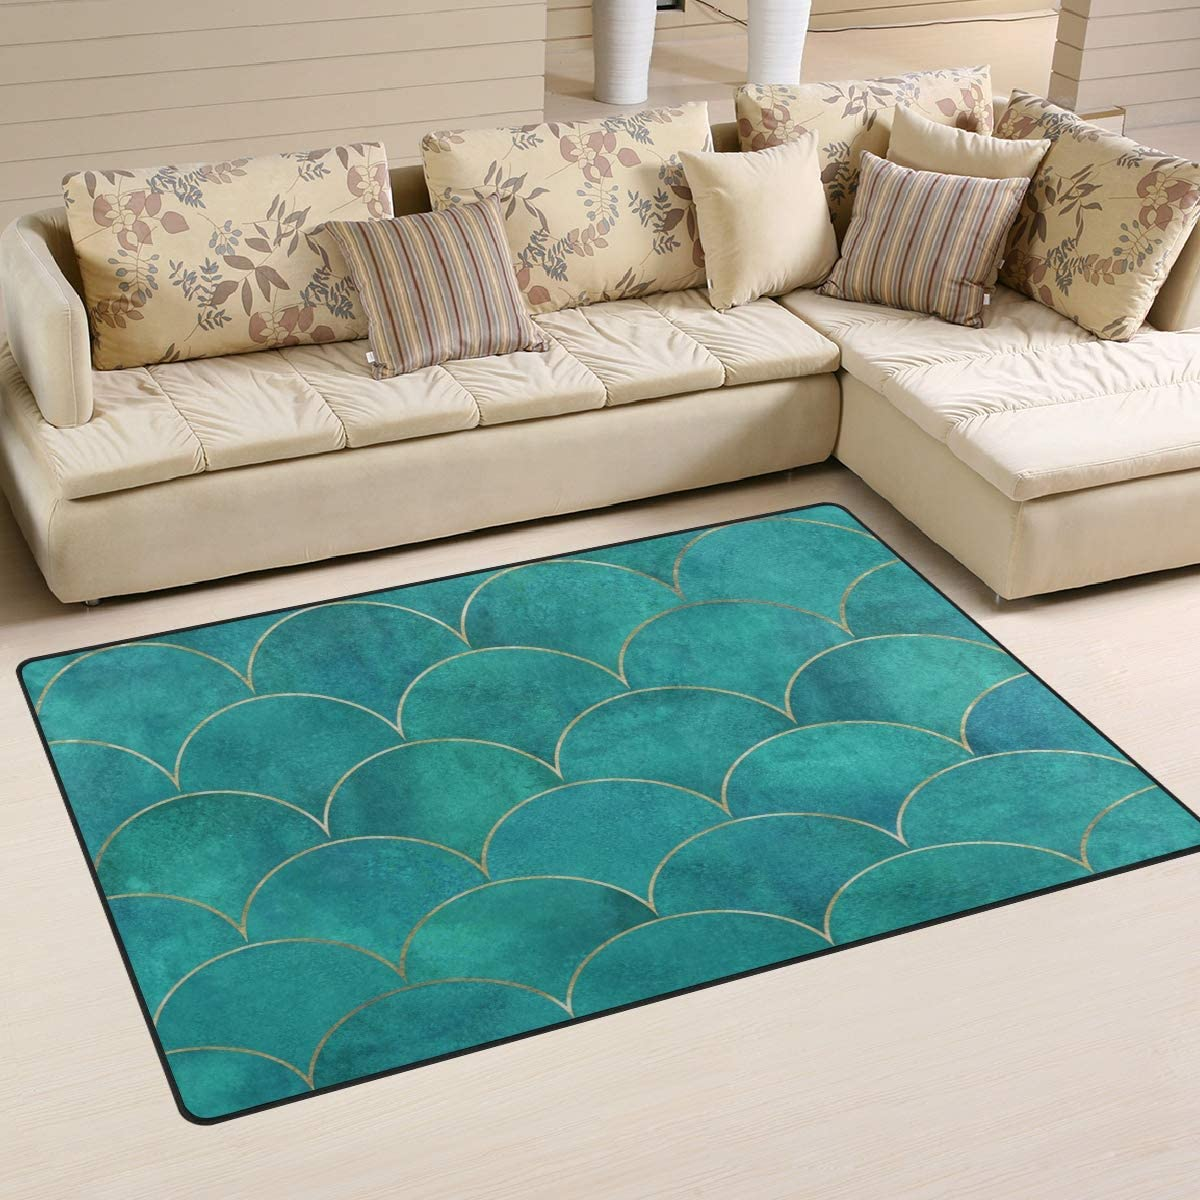 Comfort&products Non-Slip Area Rugs Home Decor, Japanese Teal Mermaid Fish Scale Floor Mat Living Room Bedroom Carpets Doormats Multi-Size